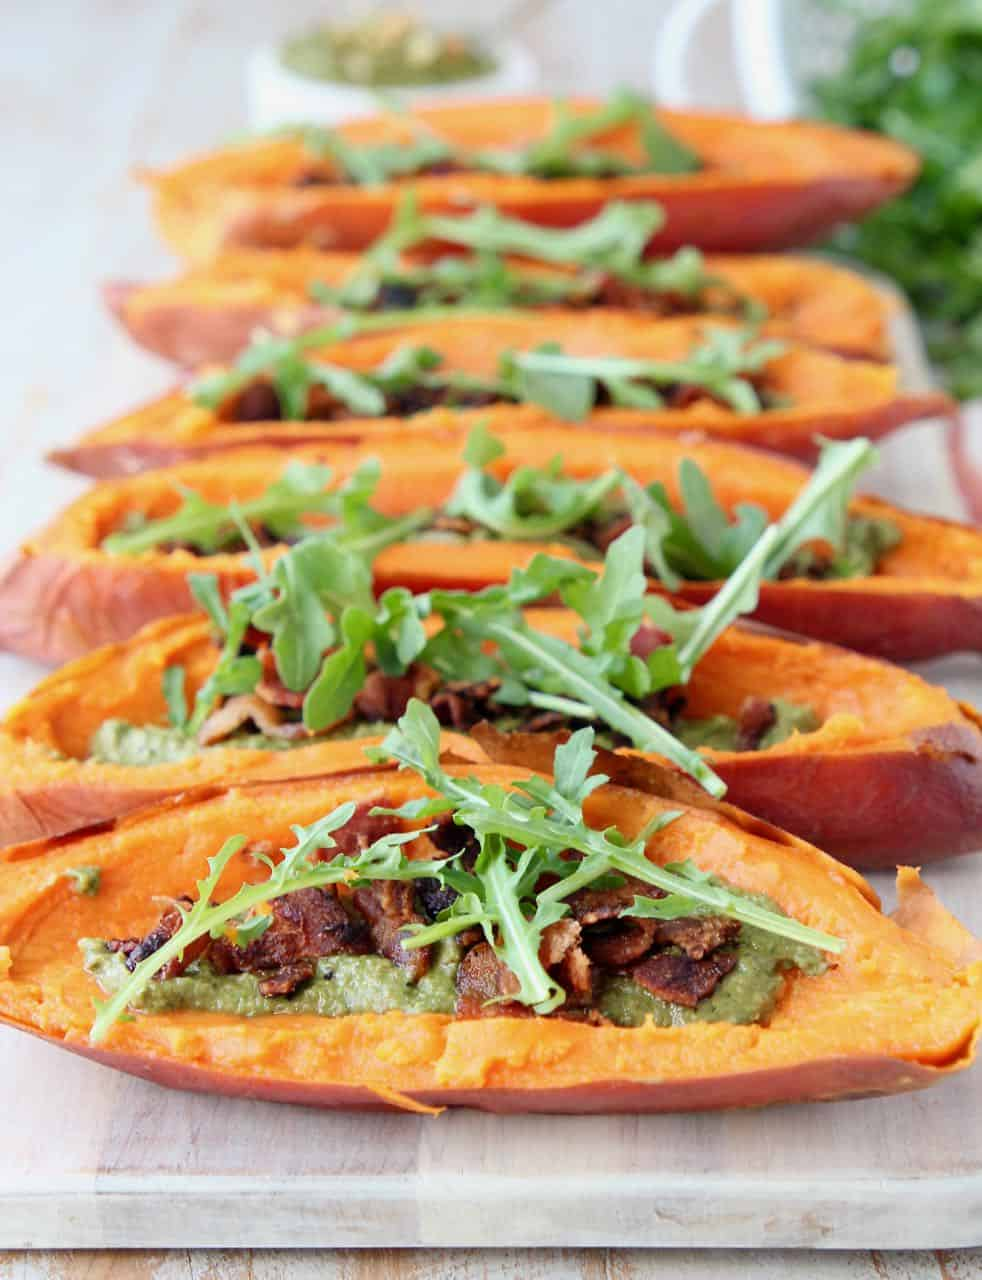 Loaded sweet potato skins on wood serving tray